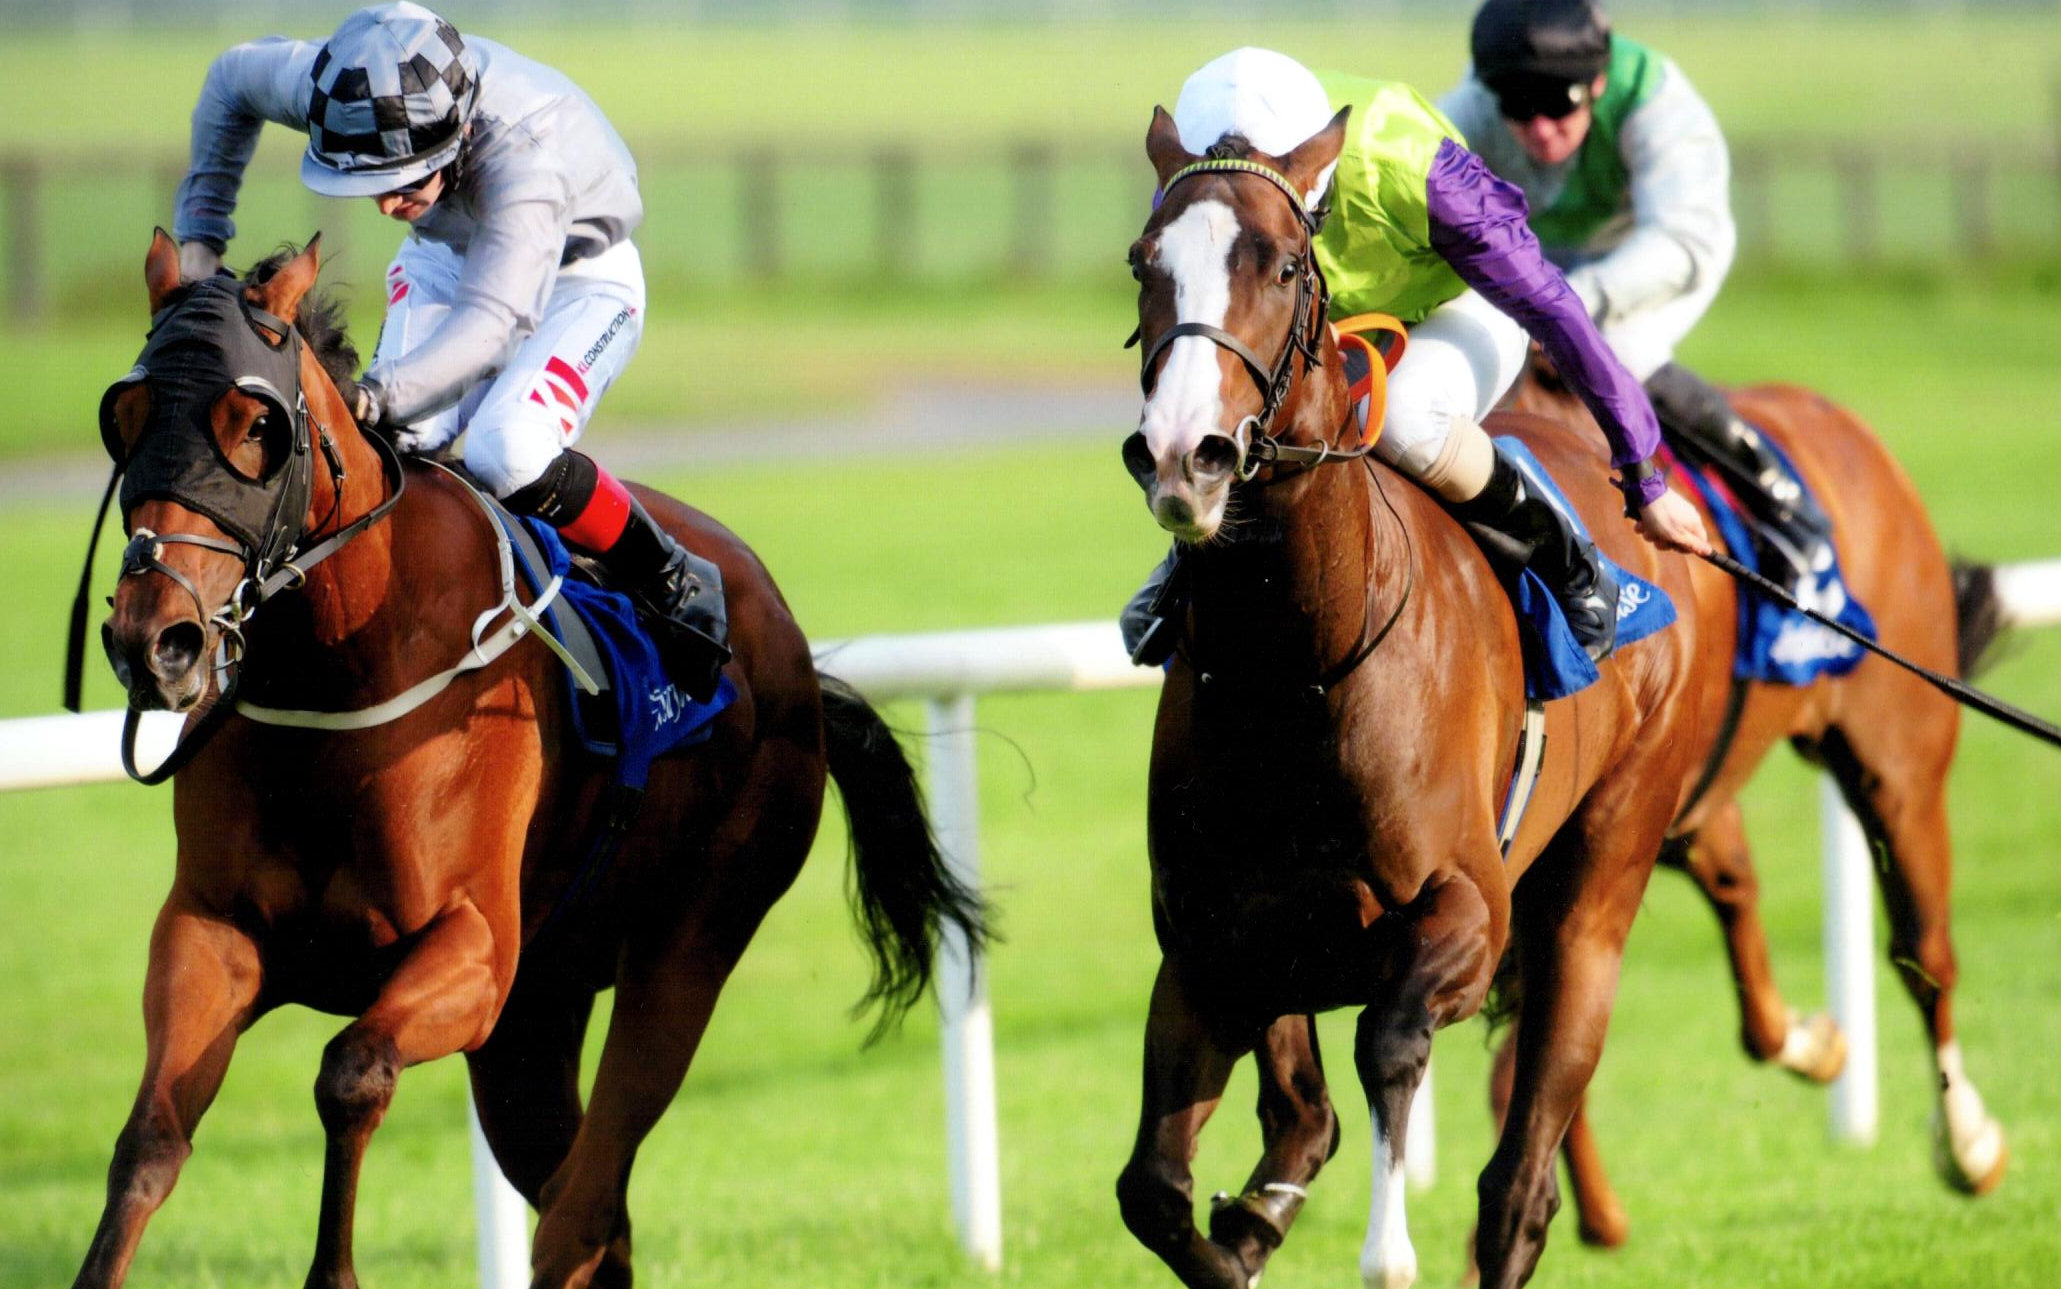 ELEGANT DRAMA makes it a treble on the night in the Irish Stallion Farms EBF M'dn at Fairyhouse, 31s